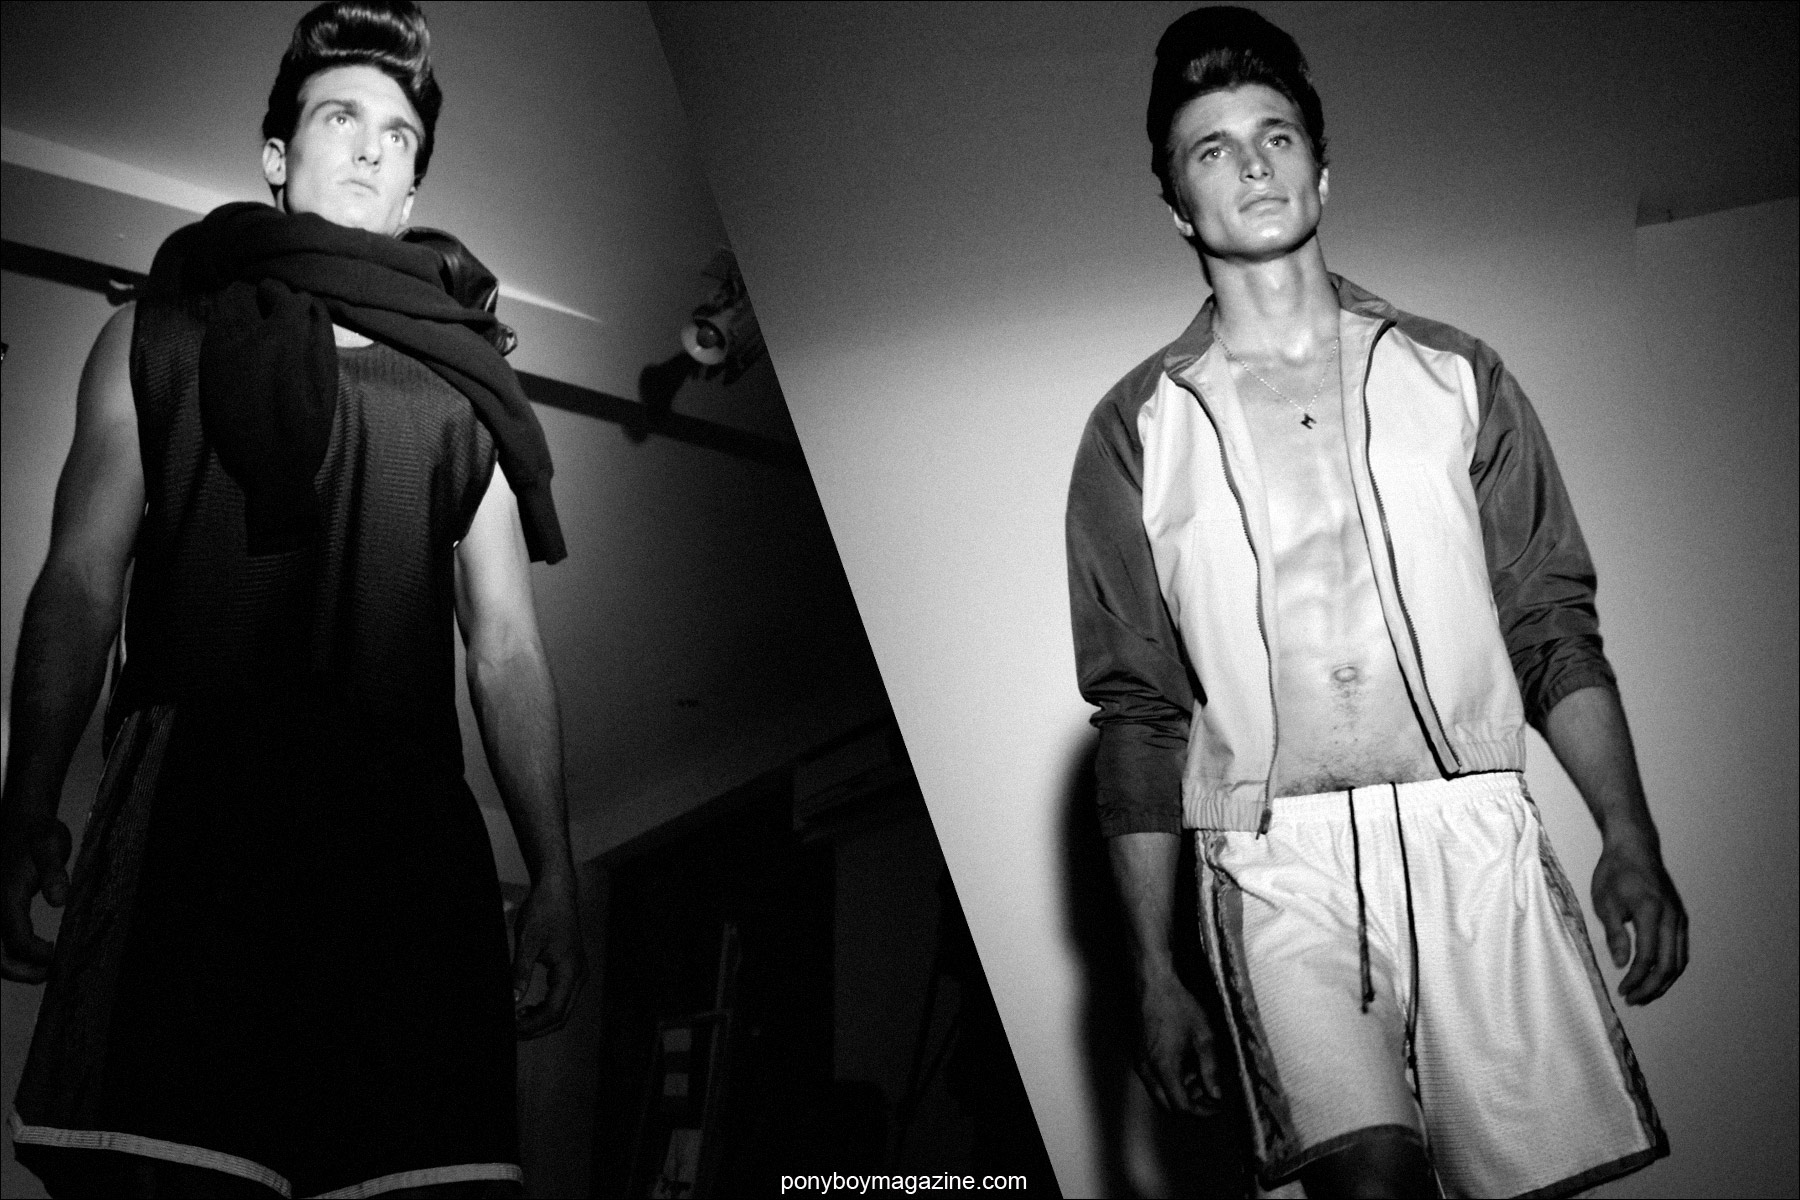 Male models in athletic inspired clothing designed by Martin Keehn Spring/Summer 2015 presented in New York City. Photographed by Alexander Thompson for Ponyboy Magazine.